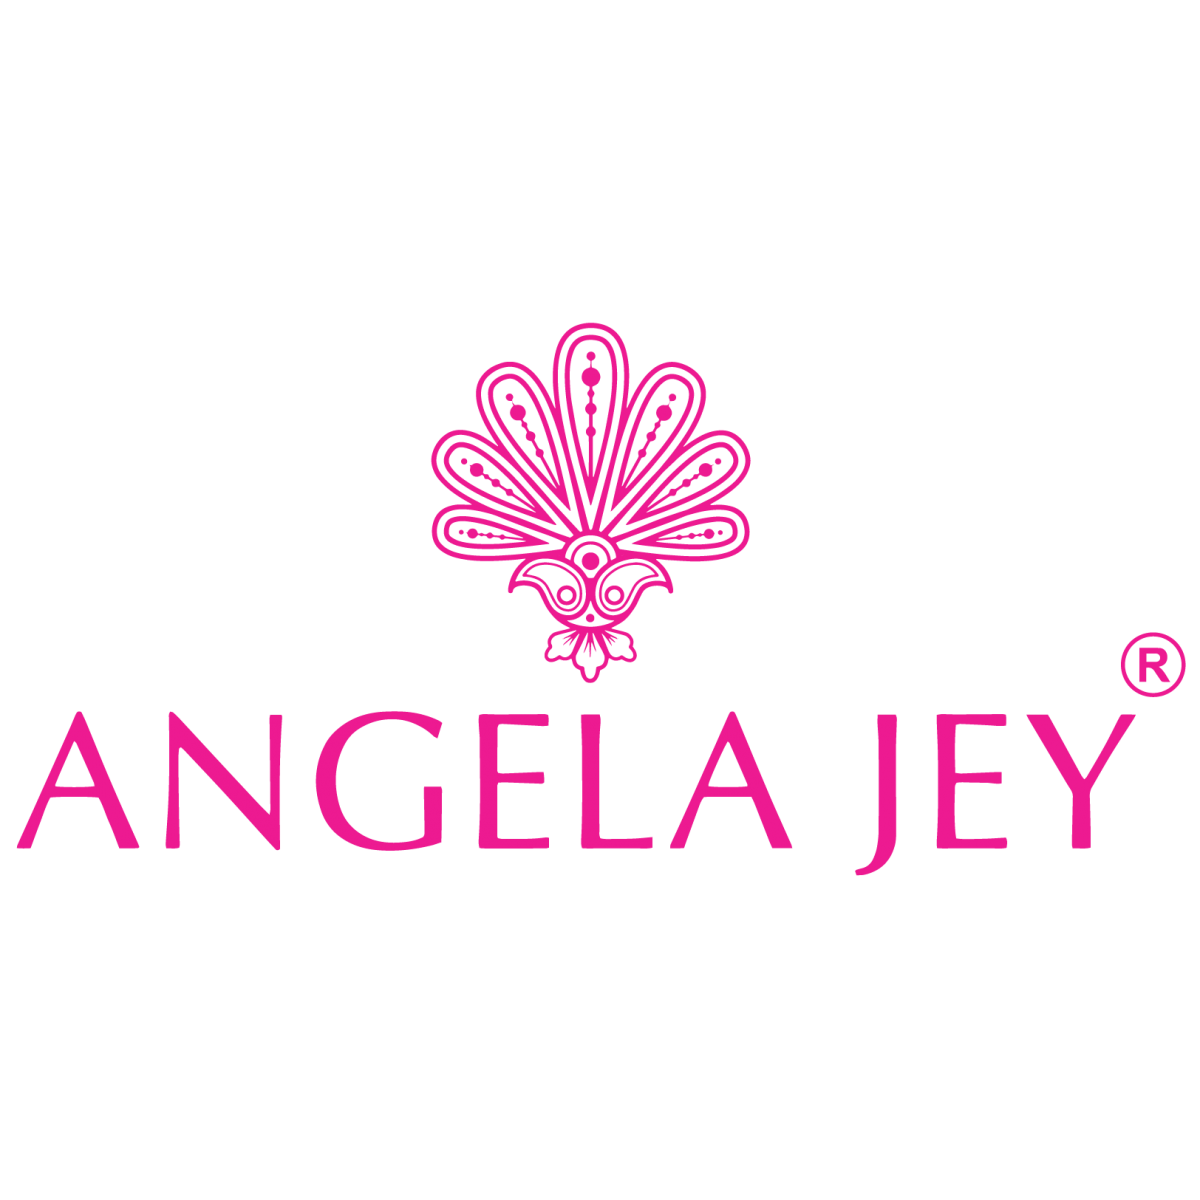 Angela Jey | Collecting Charges